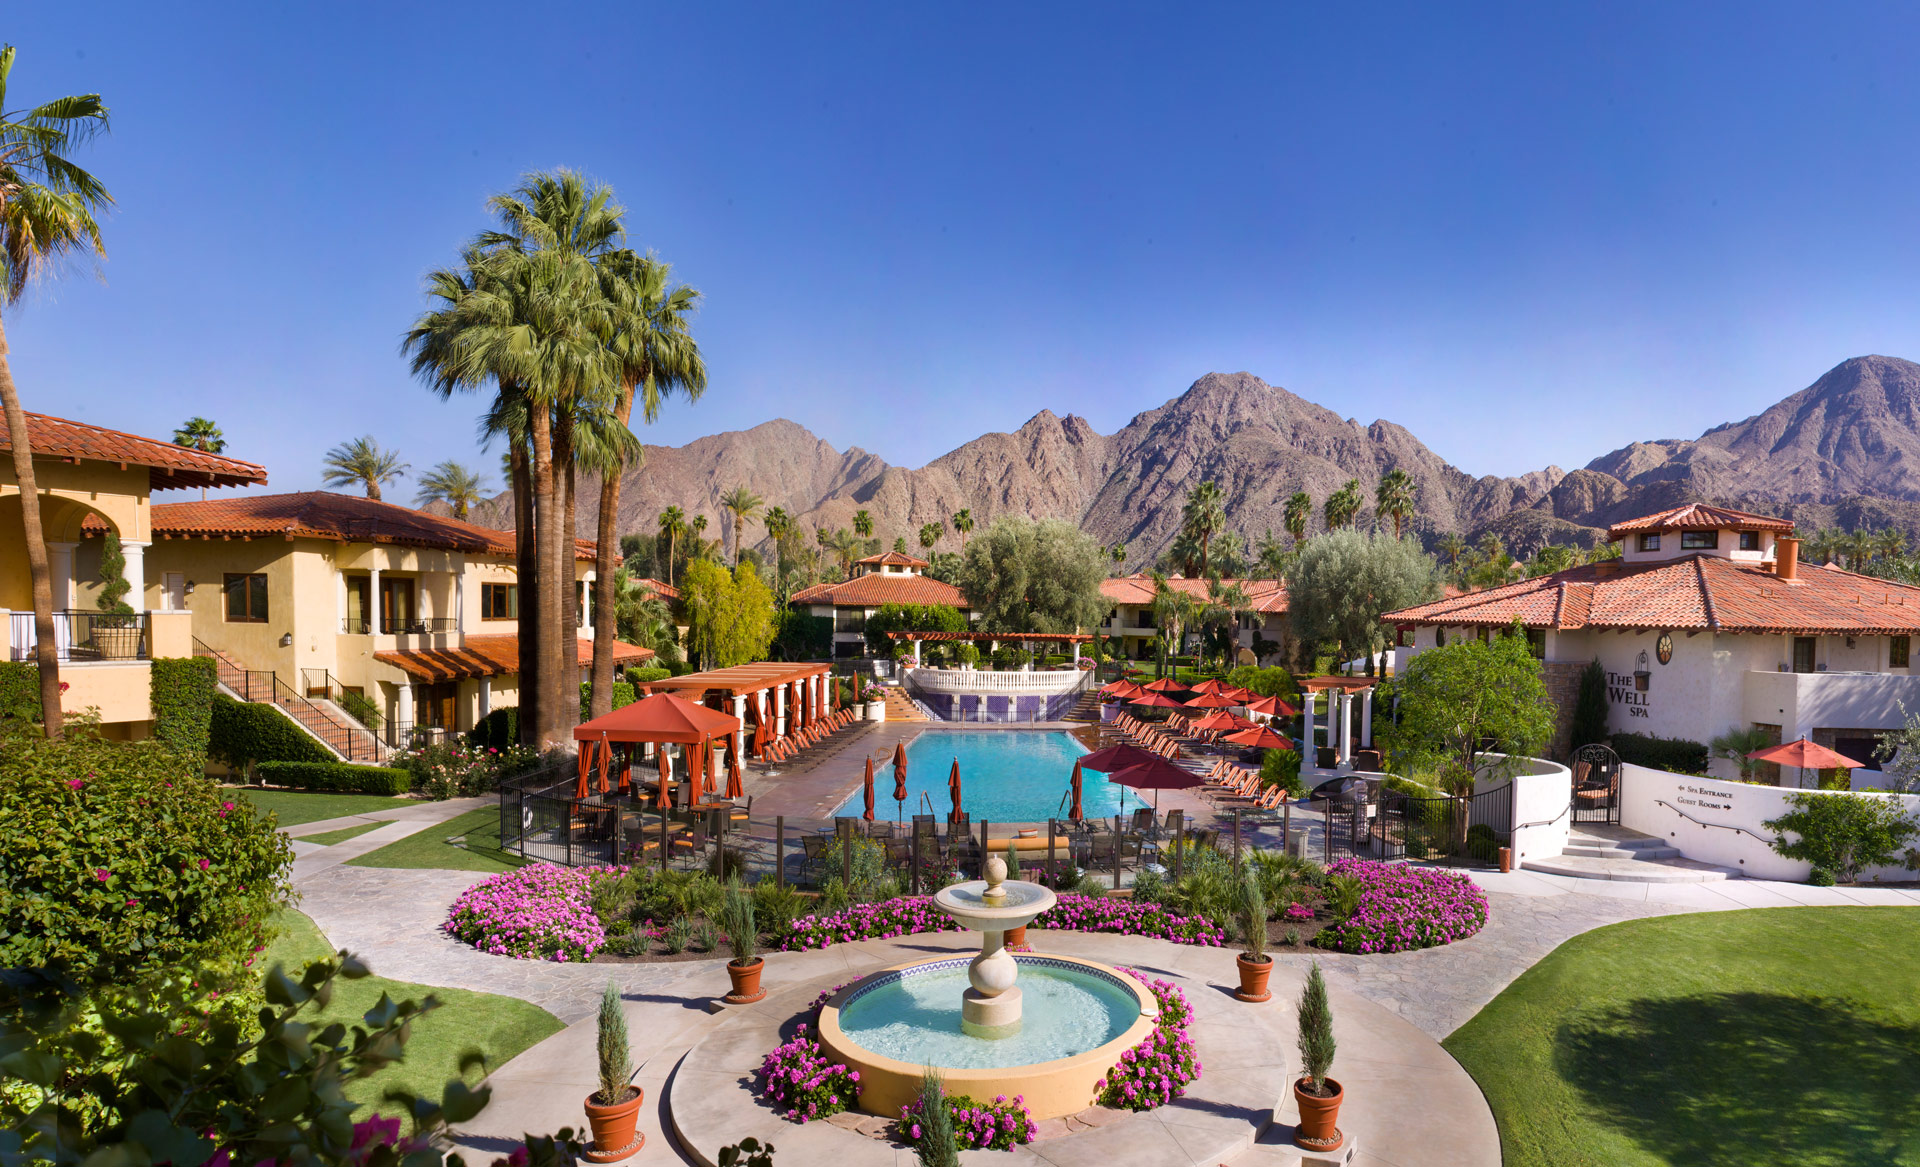 3 Night Miramonte Resort Spa Weekend One Vip Travel Package For 4 People